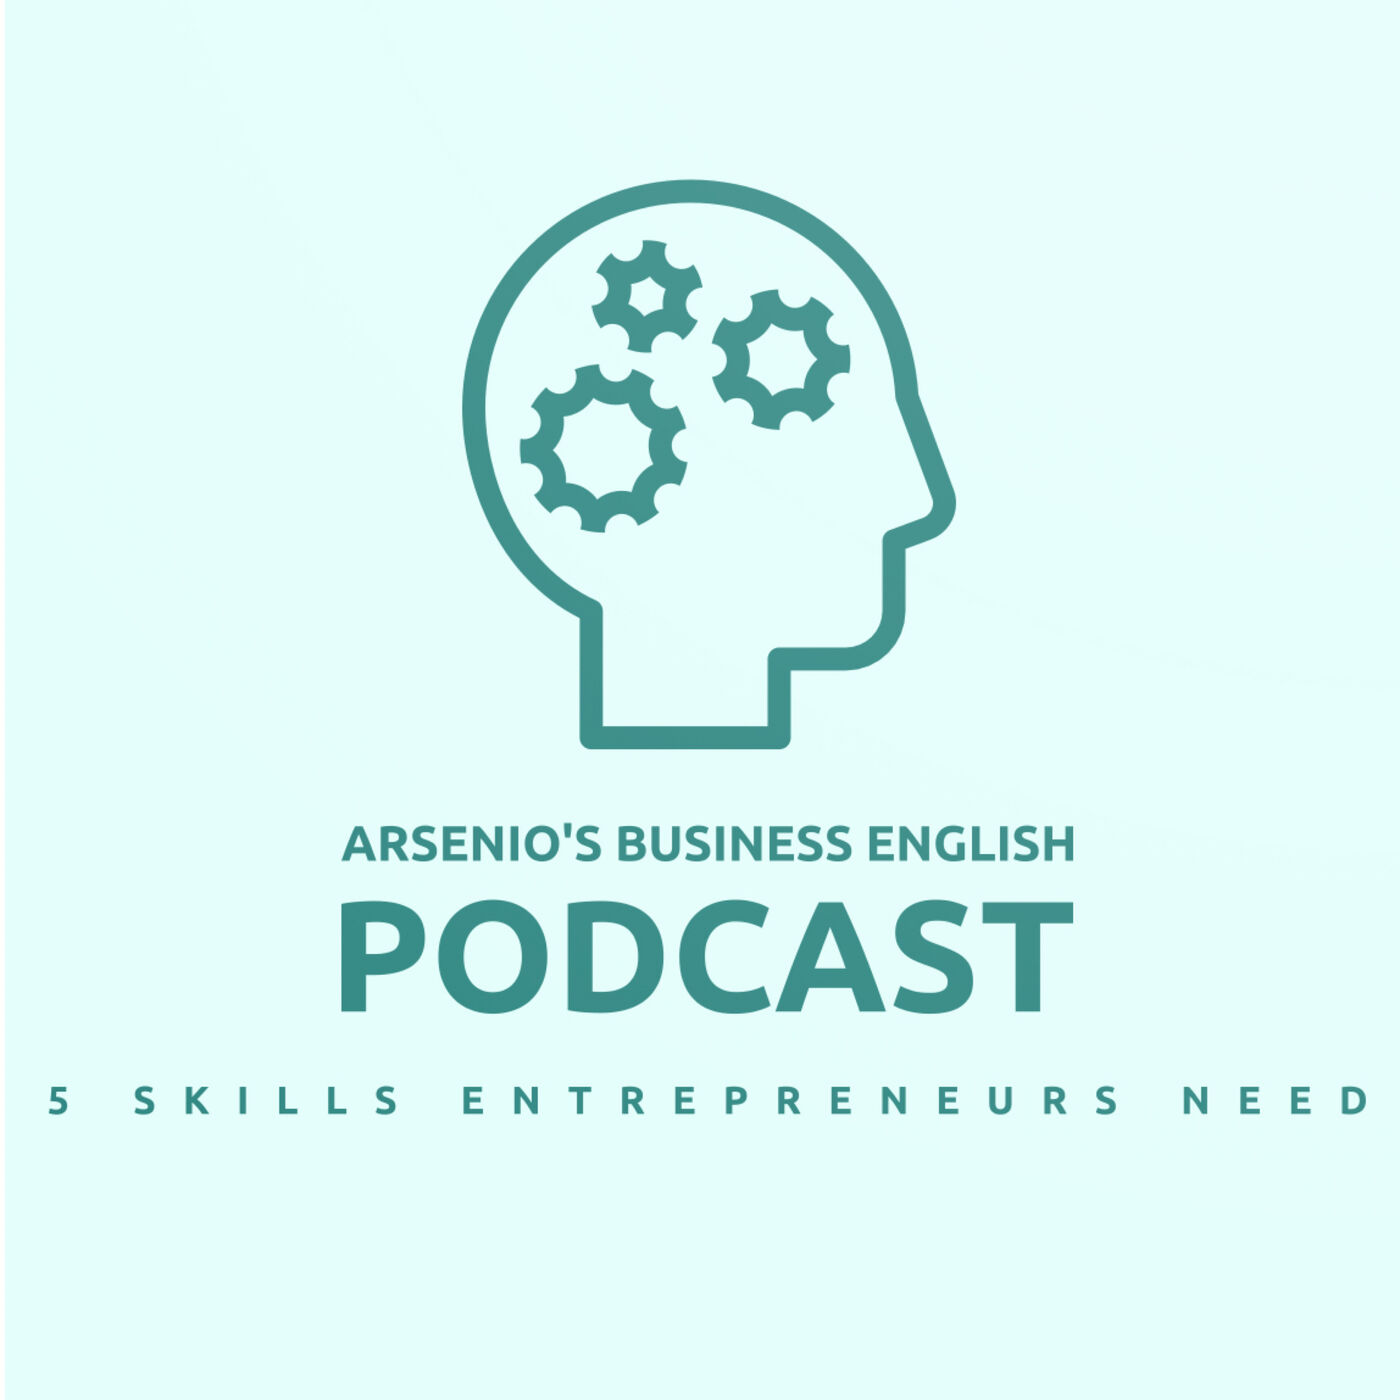 Arsenio's Business English Podcast | Season 6: Episode 15 | 5 Skills Entrepreneurs Need